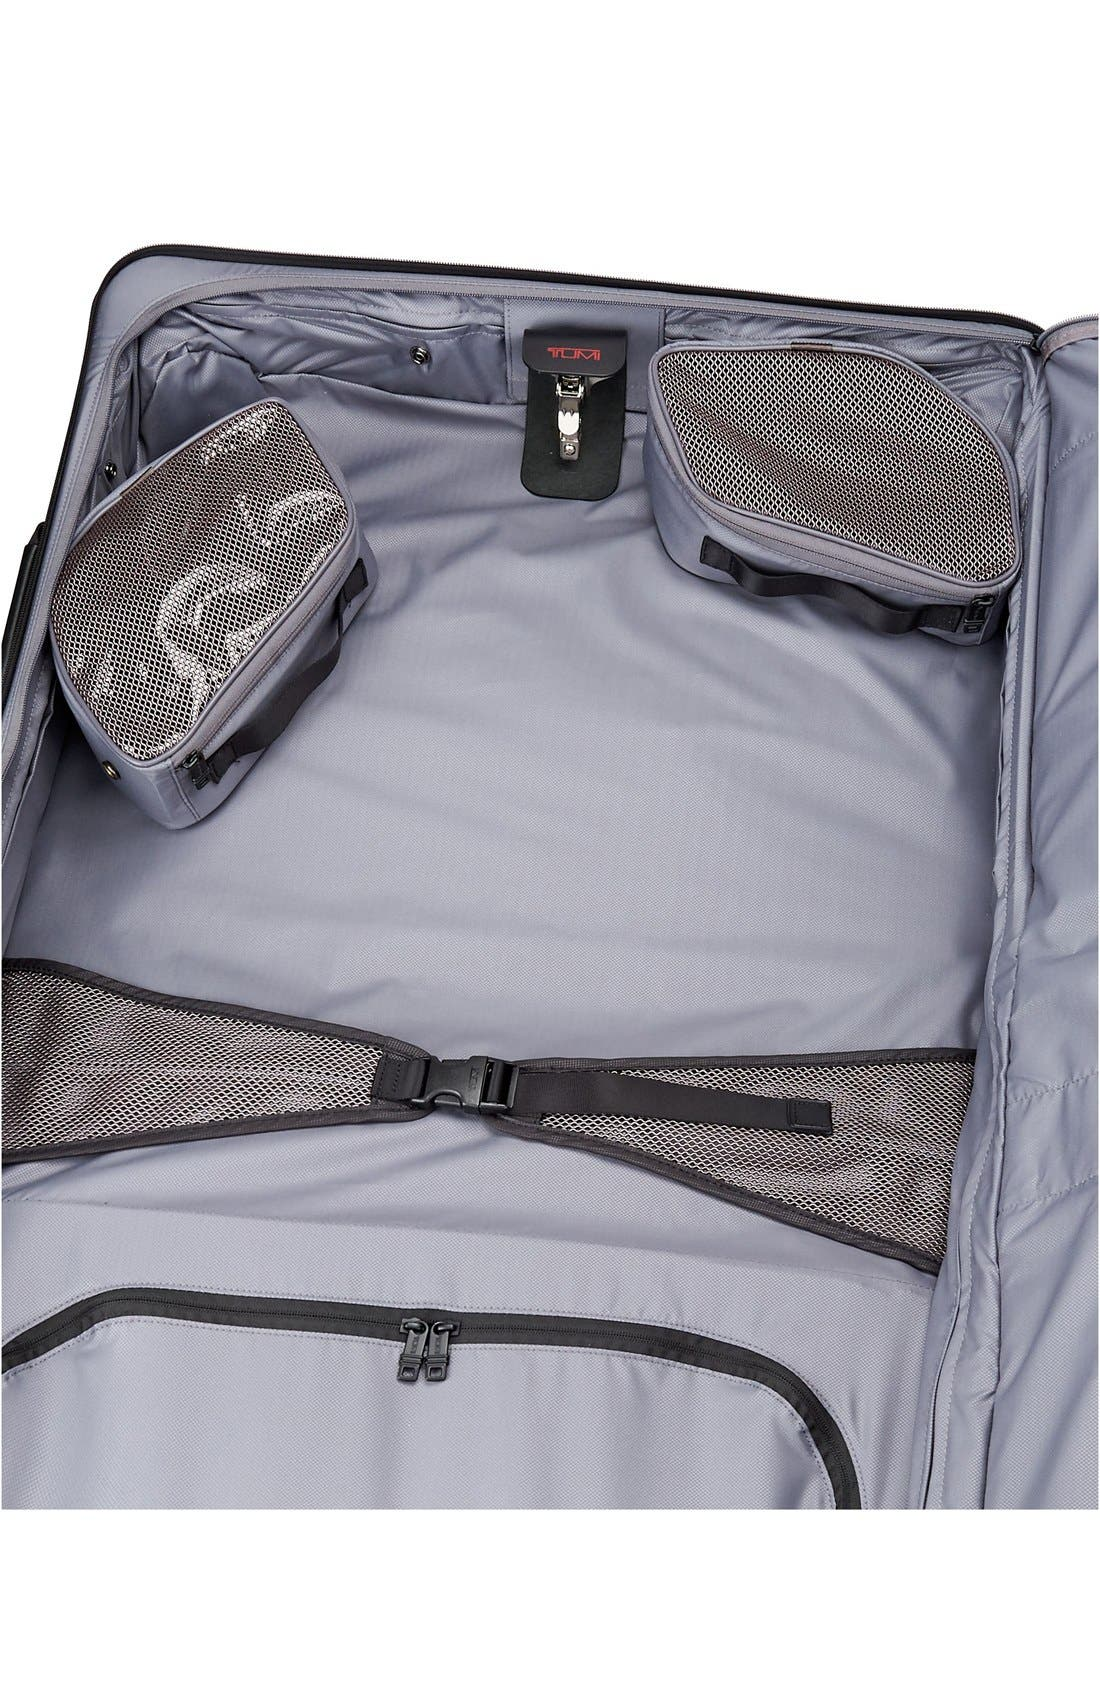 Alternate Image 4  - Tumi 'Alpha 2' Medium Trip Wheeled Garment Bag